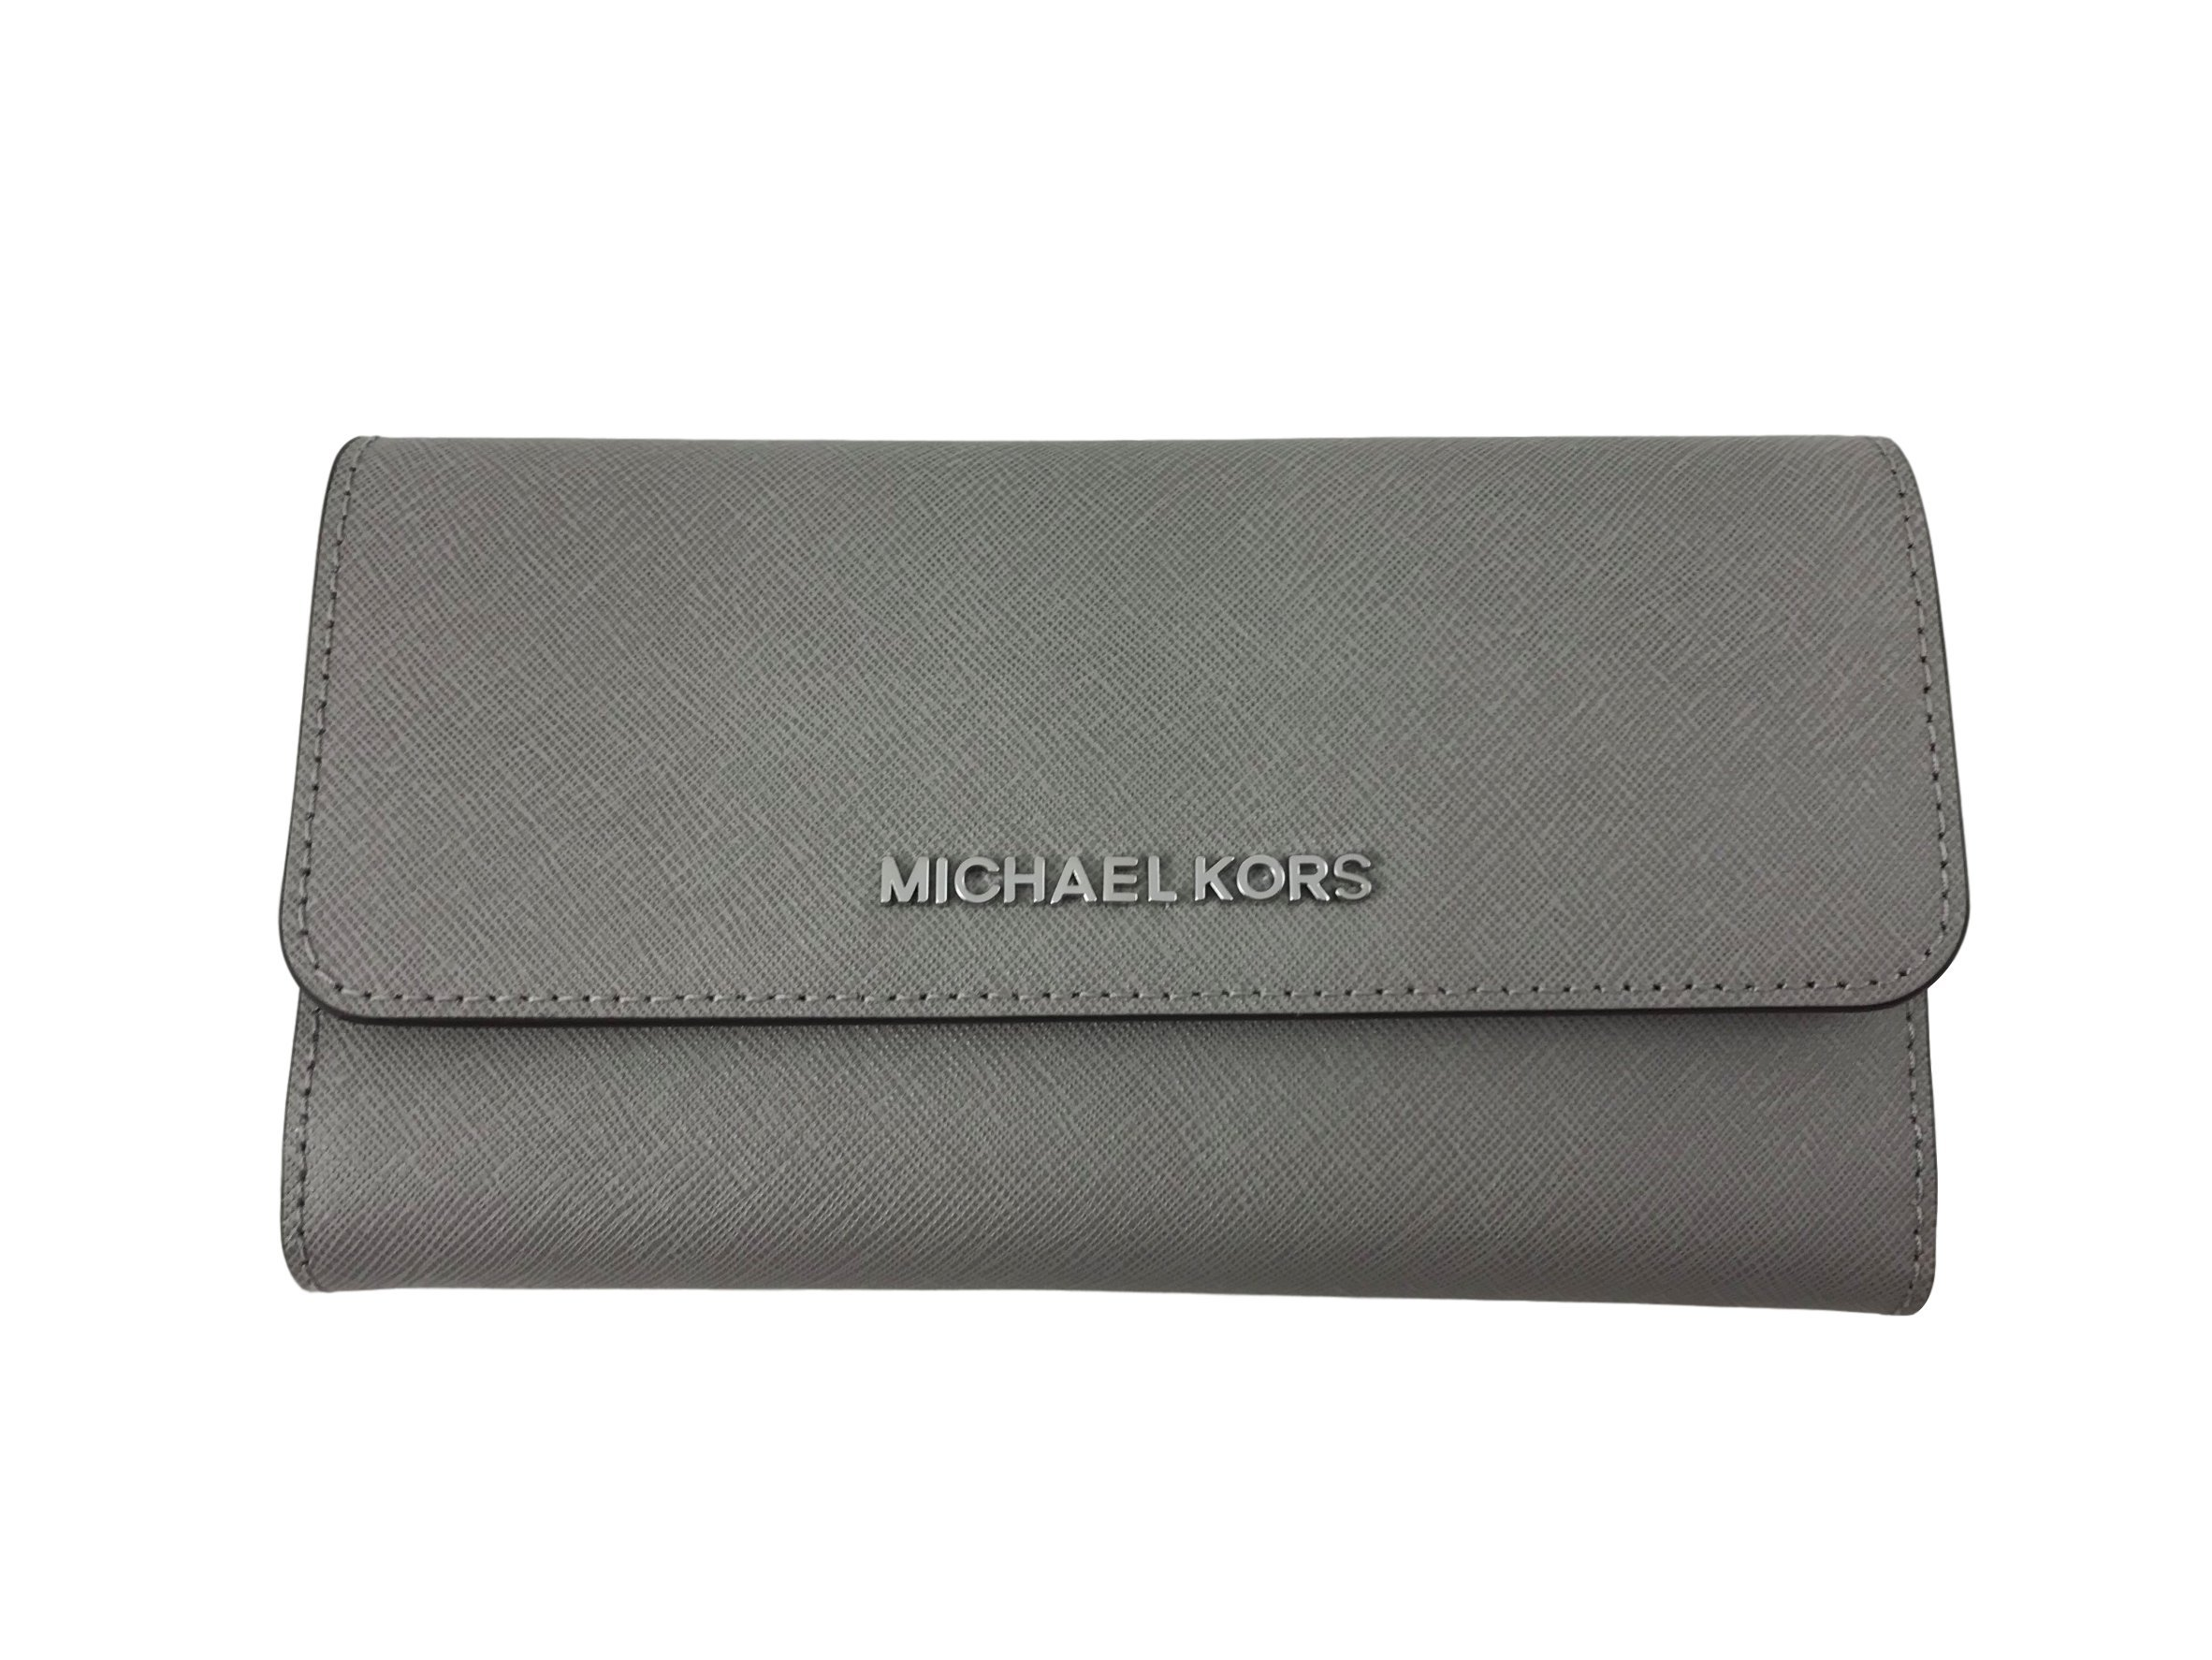 Michael Kors Jet Set Travel Large Trifold Leather Wallet (Pearl Grey) by Michael Kors